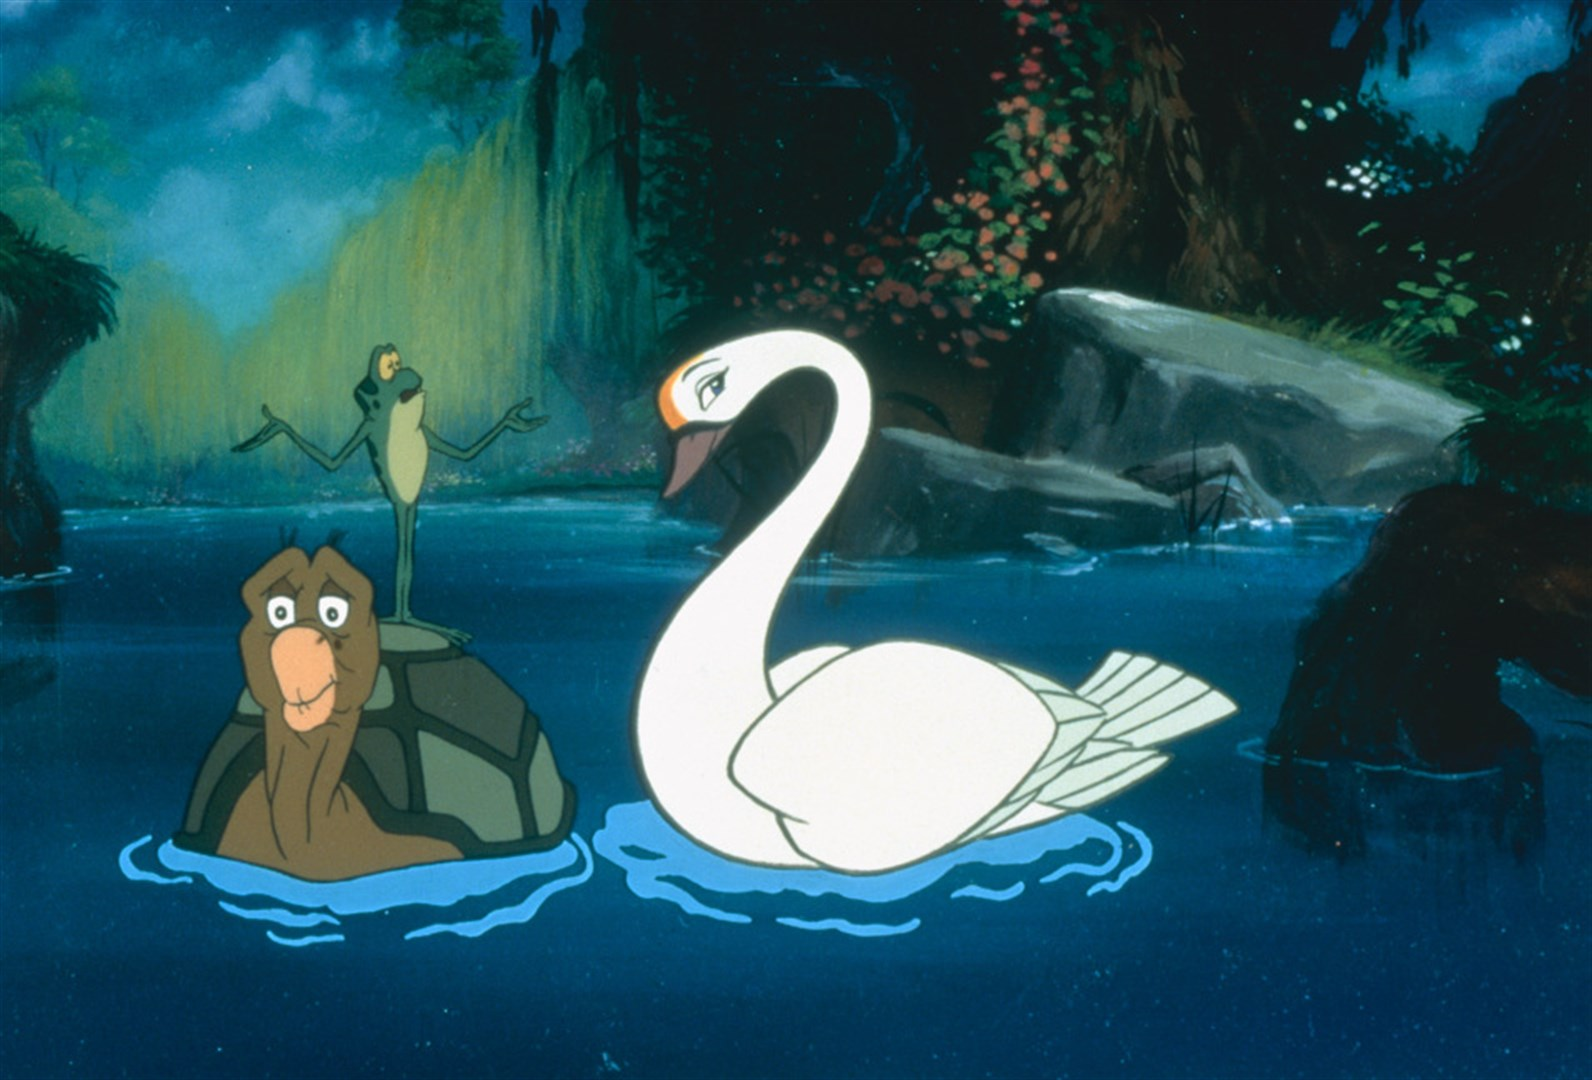 Odette as a swan, with her animal sidekicks.